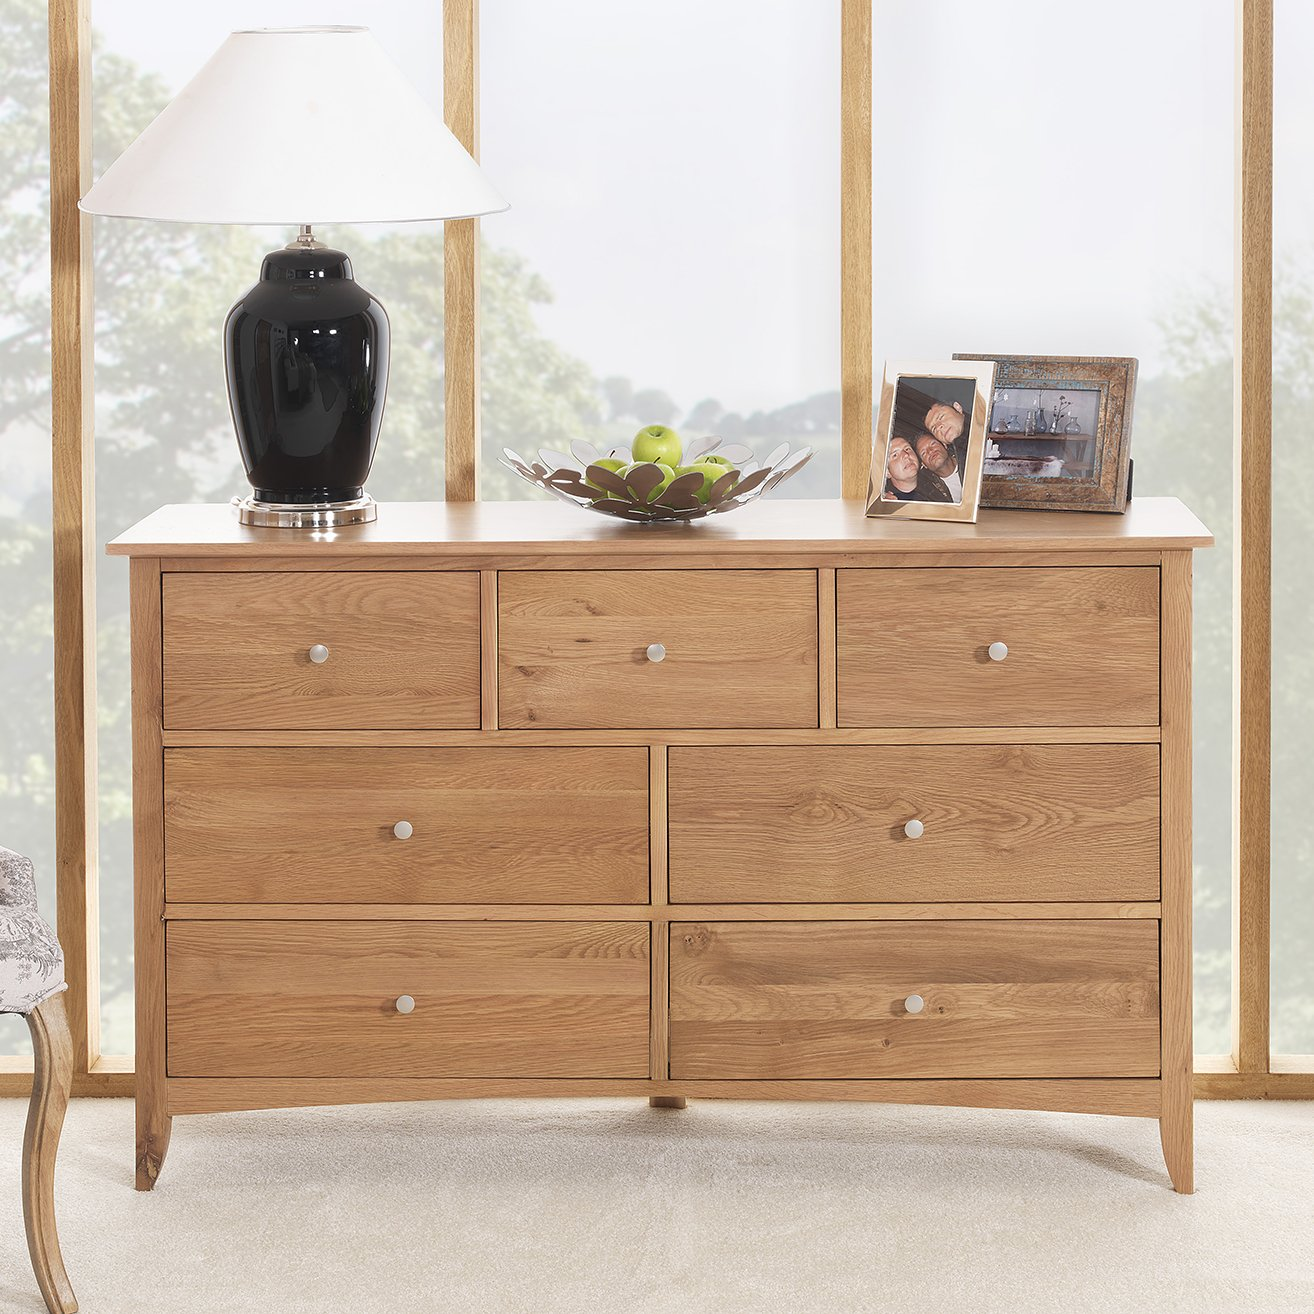 style unit the store chest drawers bedroom shop furniture casamor of retro casamore drawer home oak